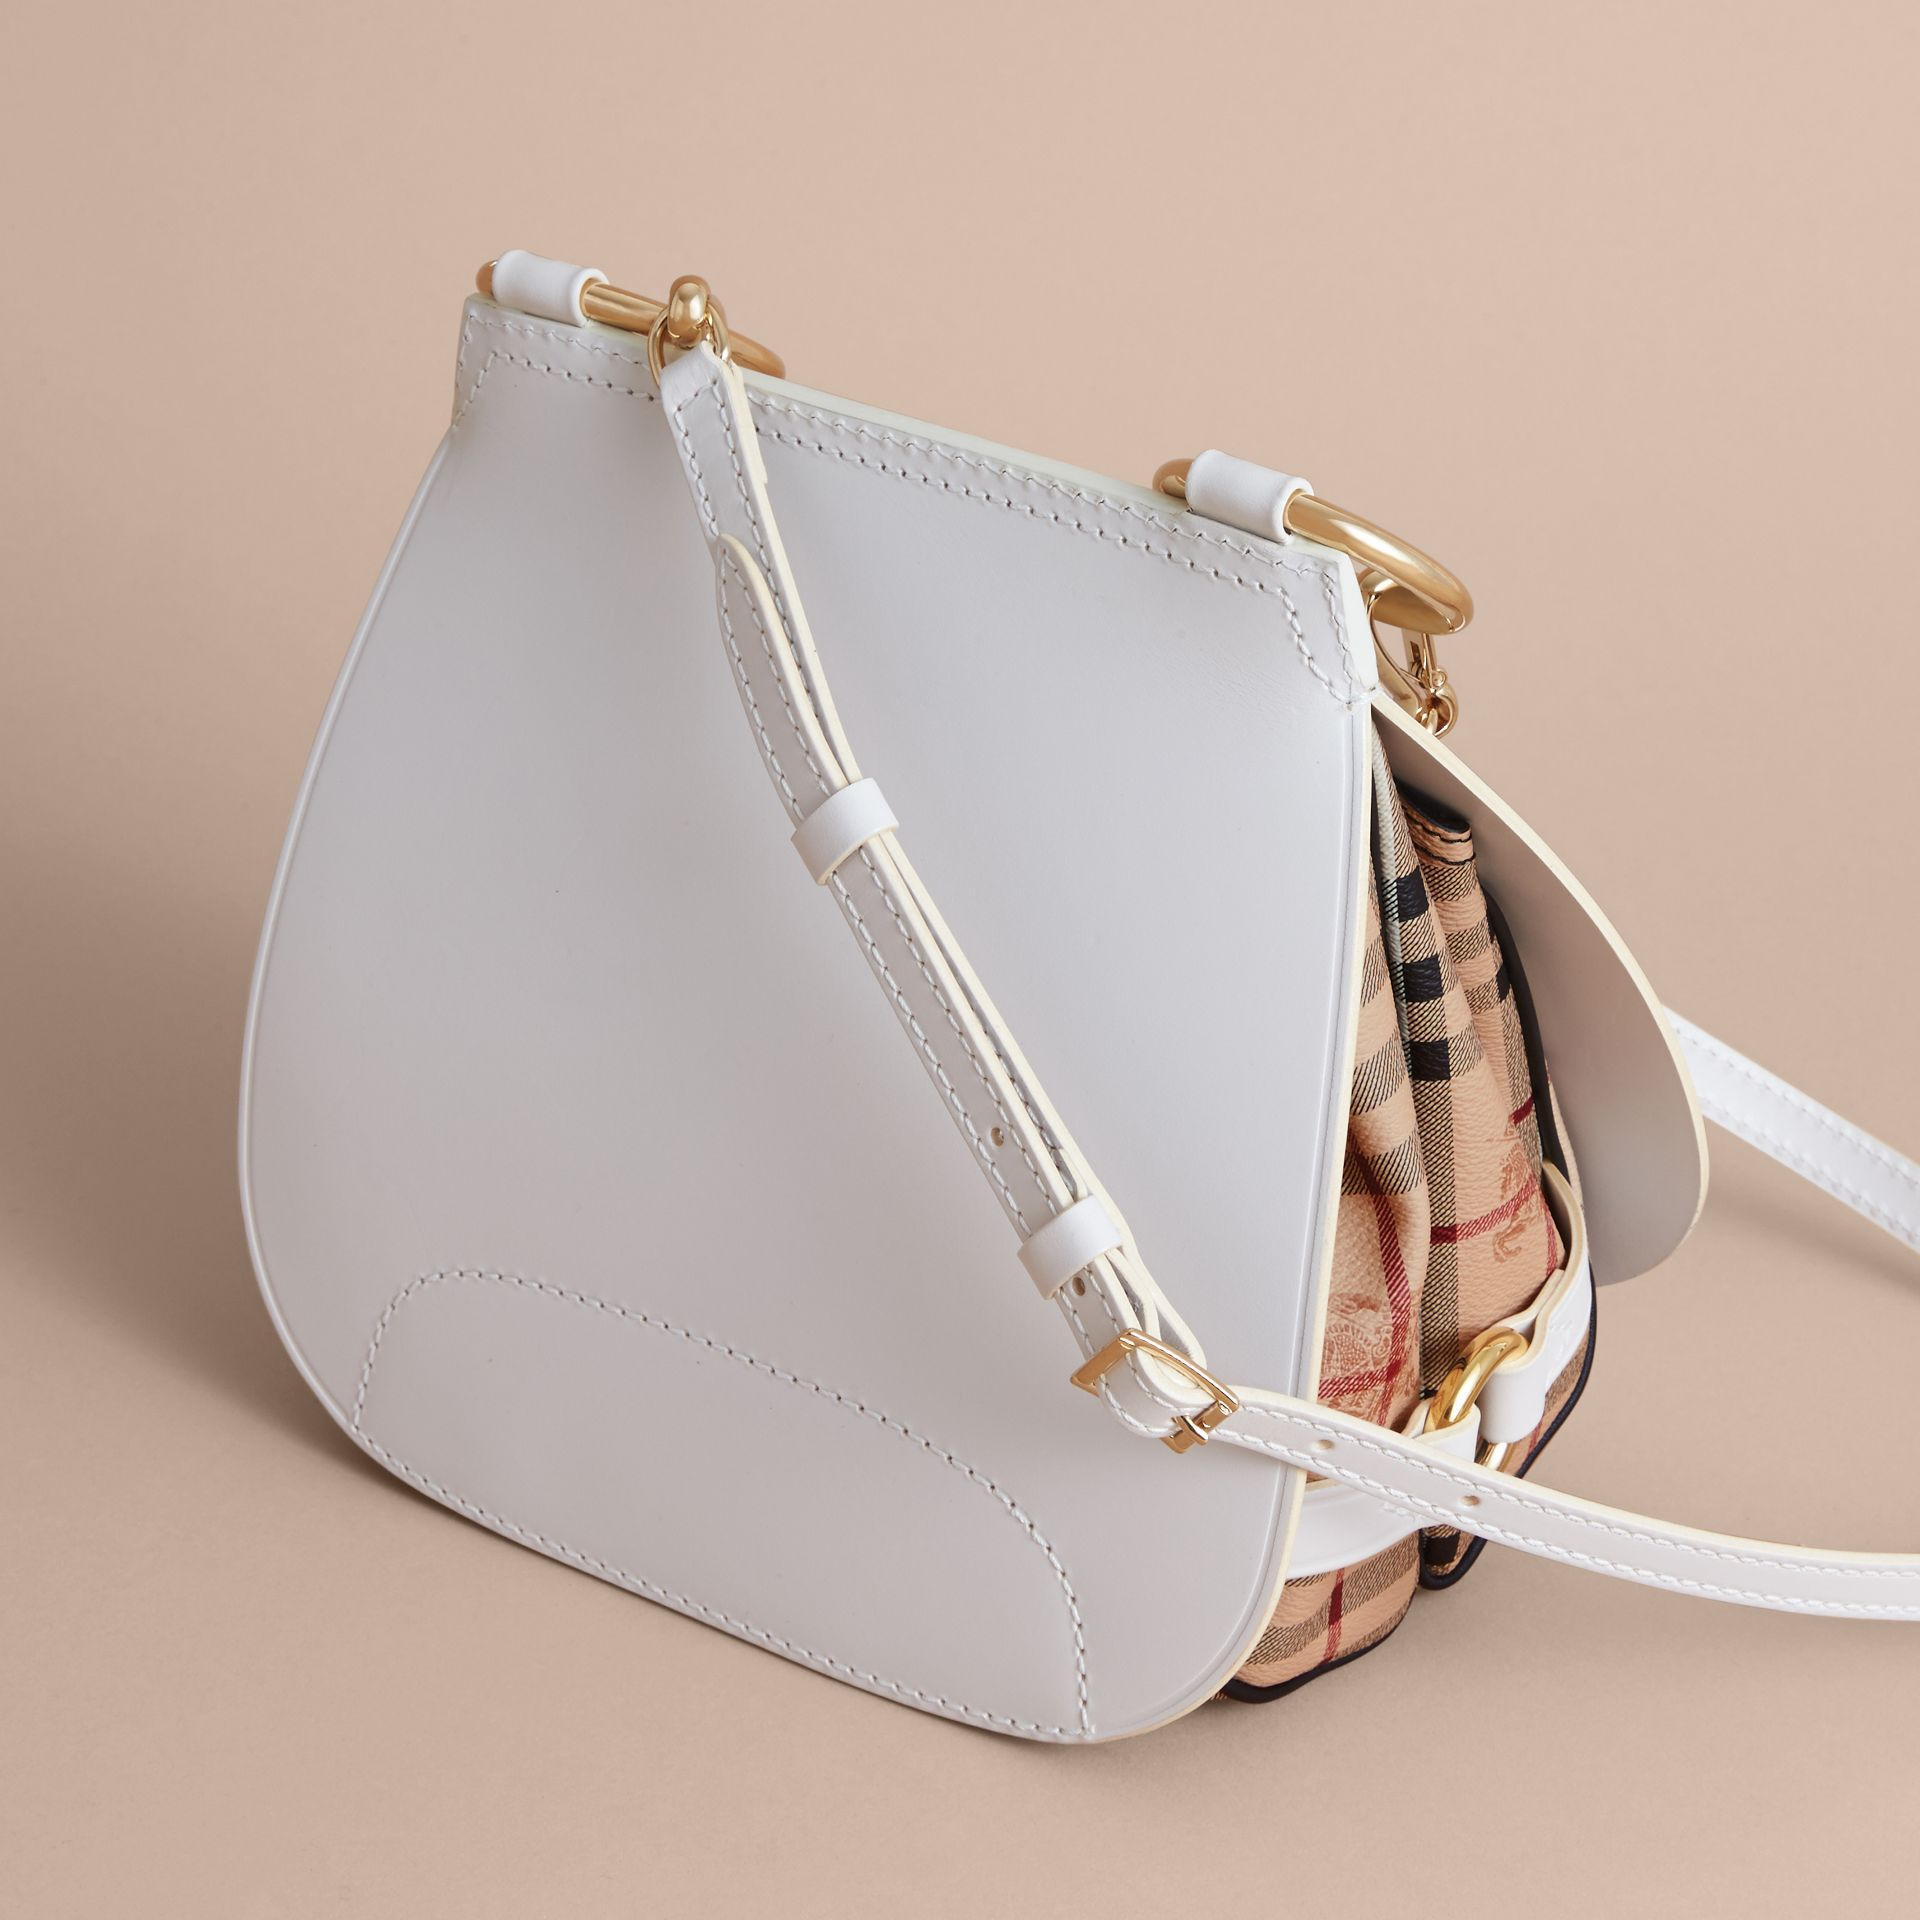 Sac The Bridle en cuir et tissu Haymarket check (Naturel) - Femme | Burberry - photo de la galerie 4